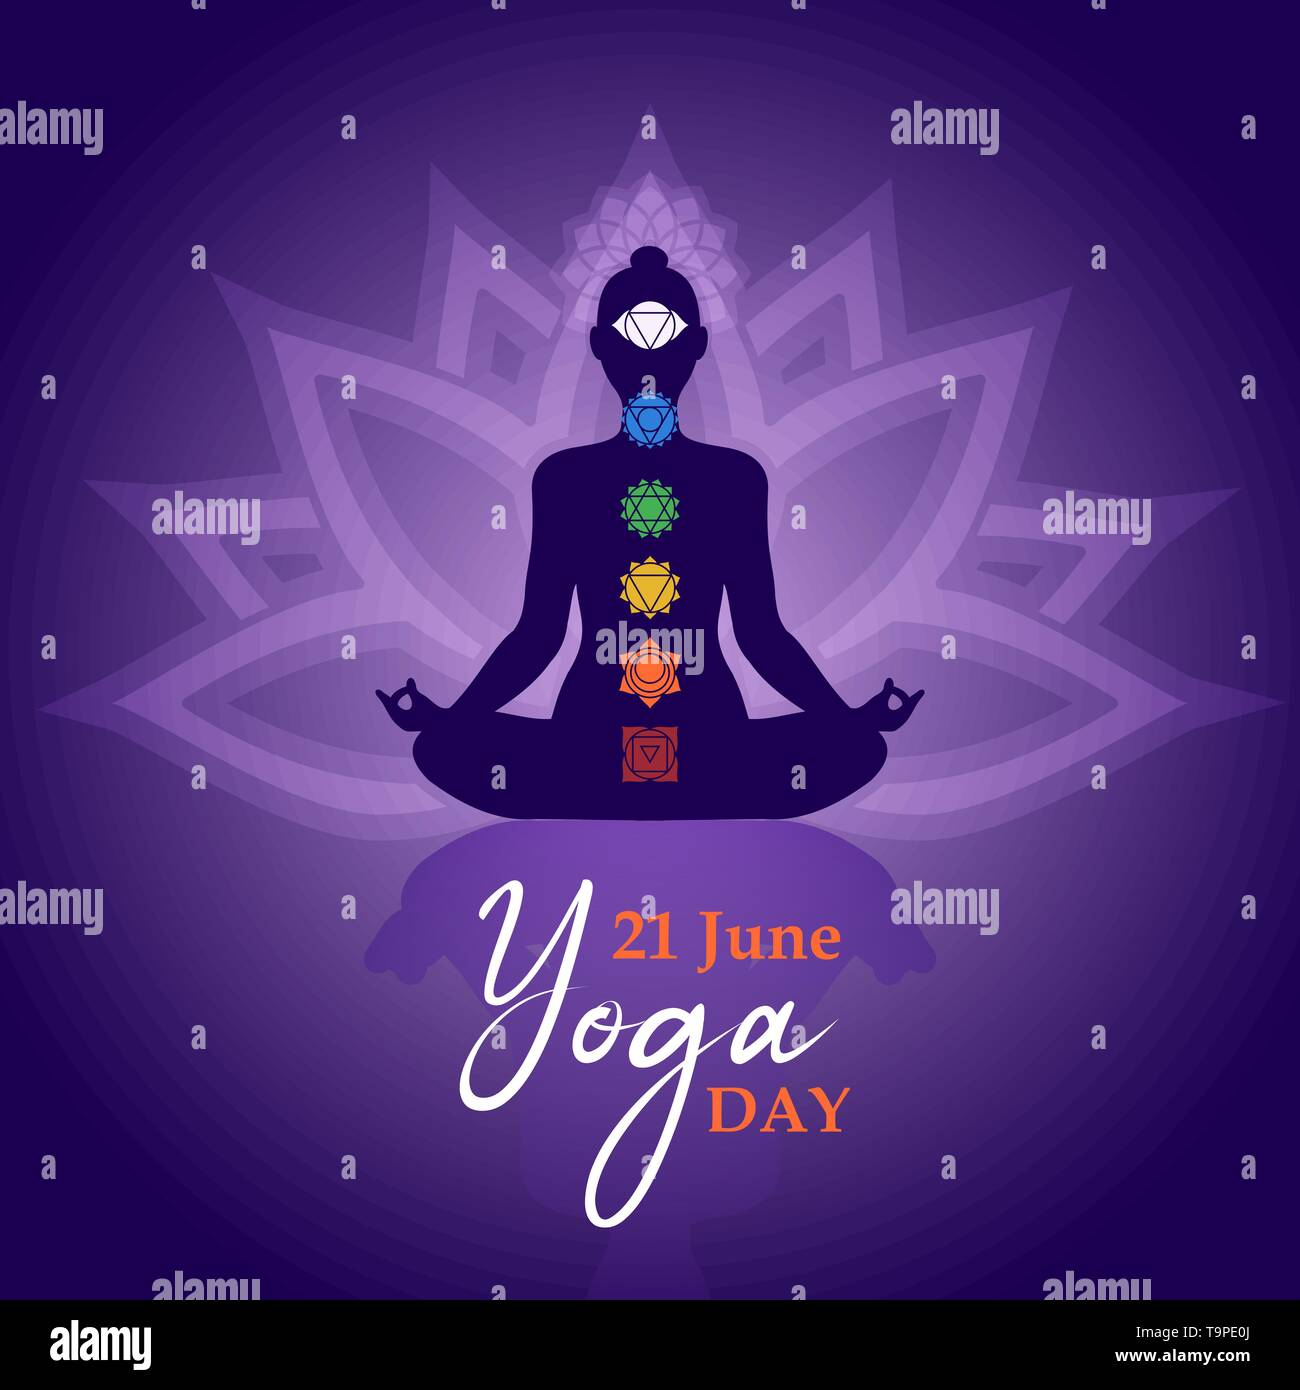 Yoga Day Greeting Card Illustration For Meditation Exercise Concept With Woman Silhouette In Lotus Pose And Chakra Icons Stock Vector Image Art Alamy